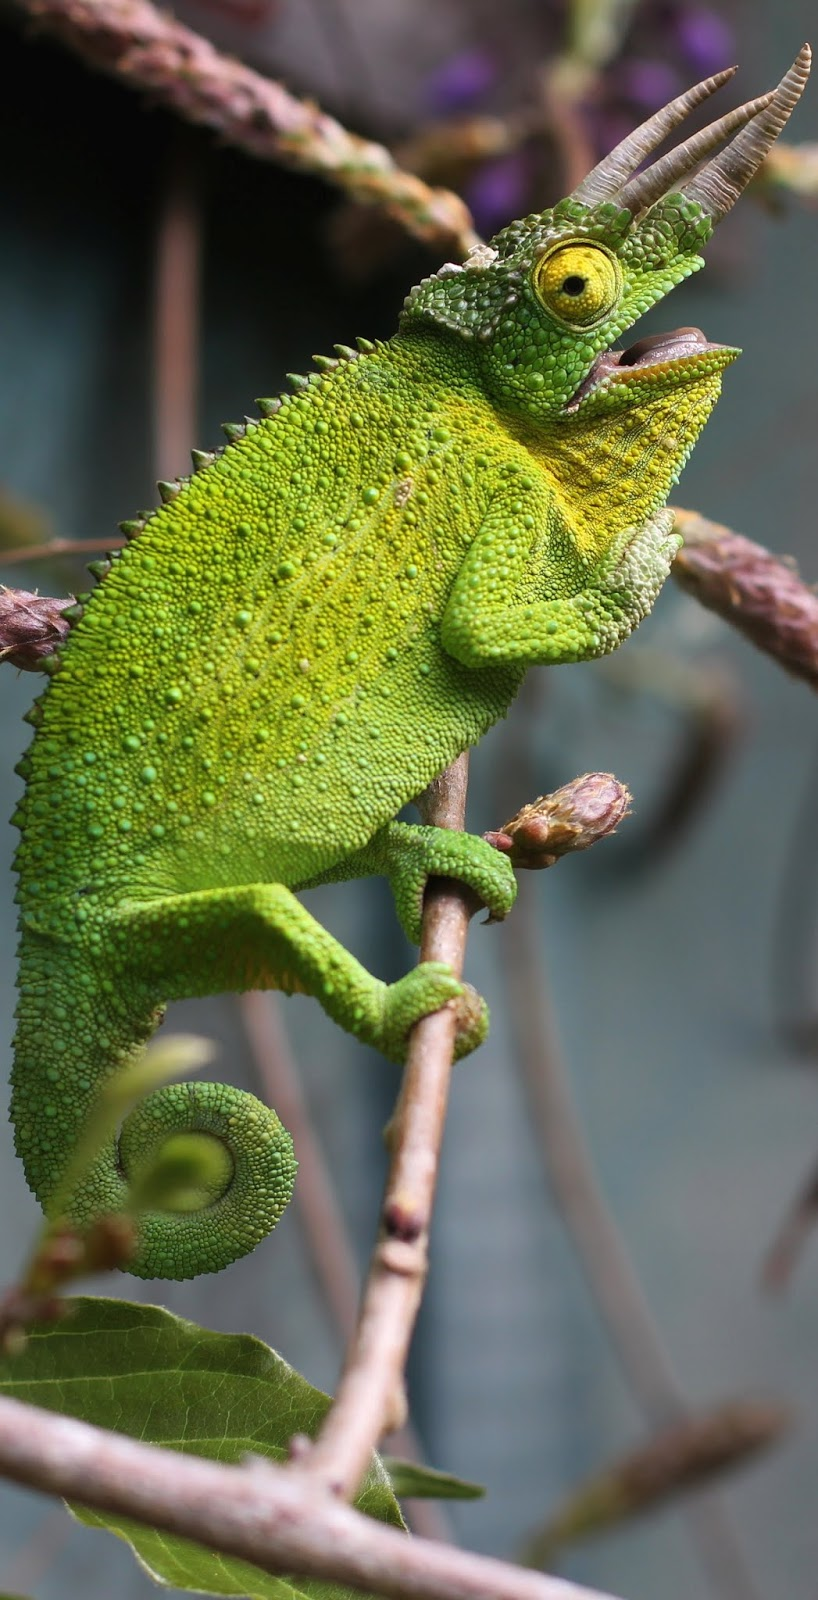 A three horned chameleon.